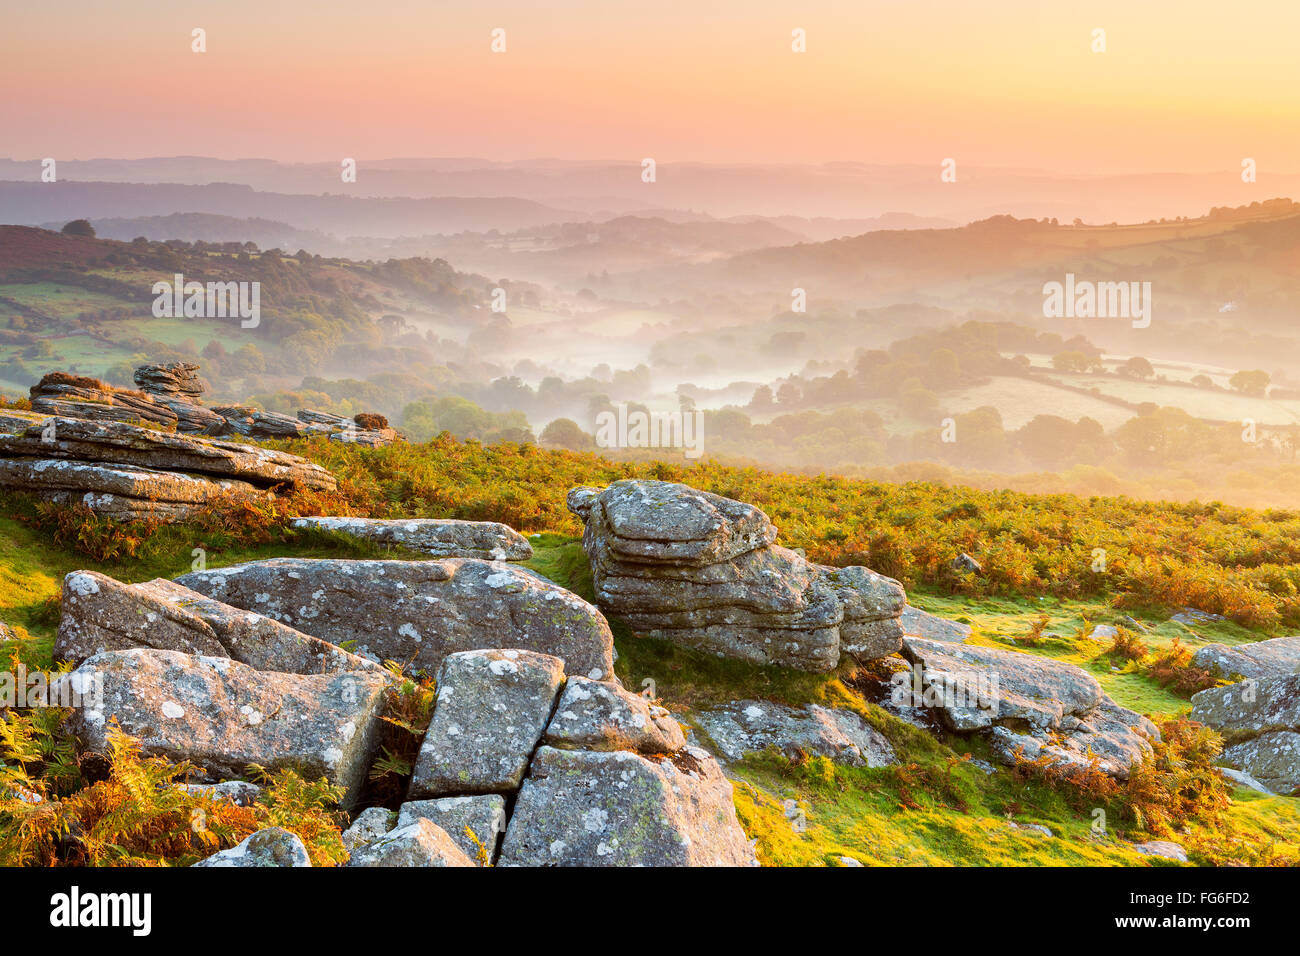 Mist over Bovey Valley seen from Hound Tor, Dartmoor National Park, Manaton, Devon, England, United Kingdom, Europe. - Stock Image